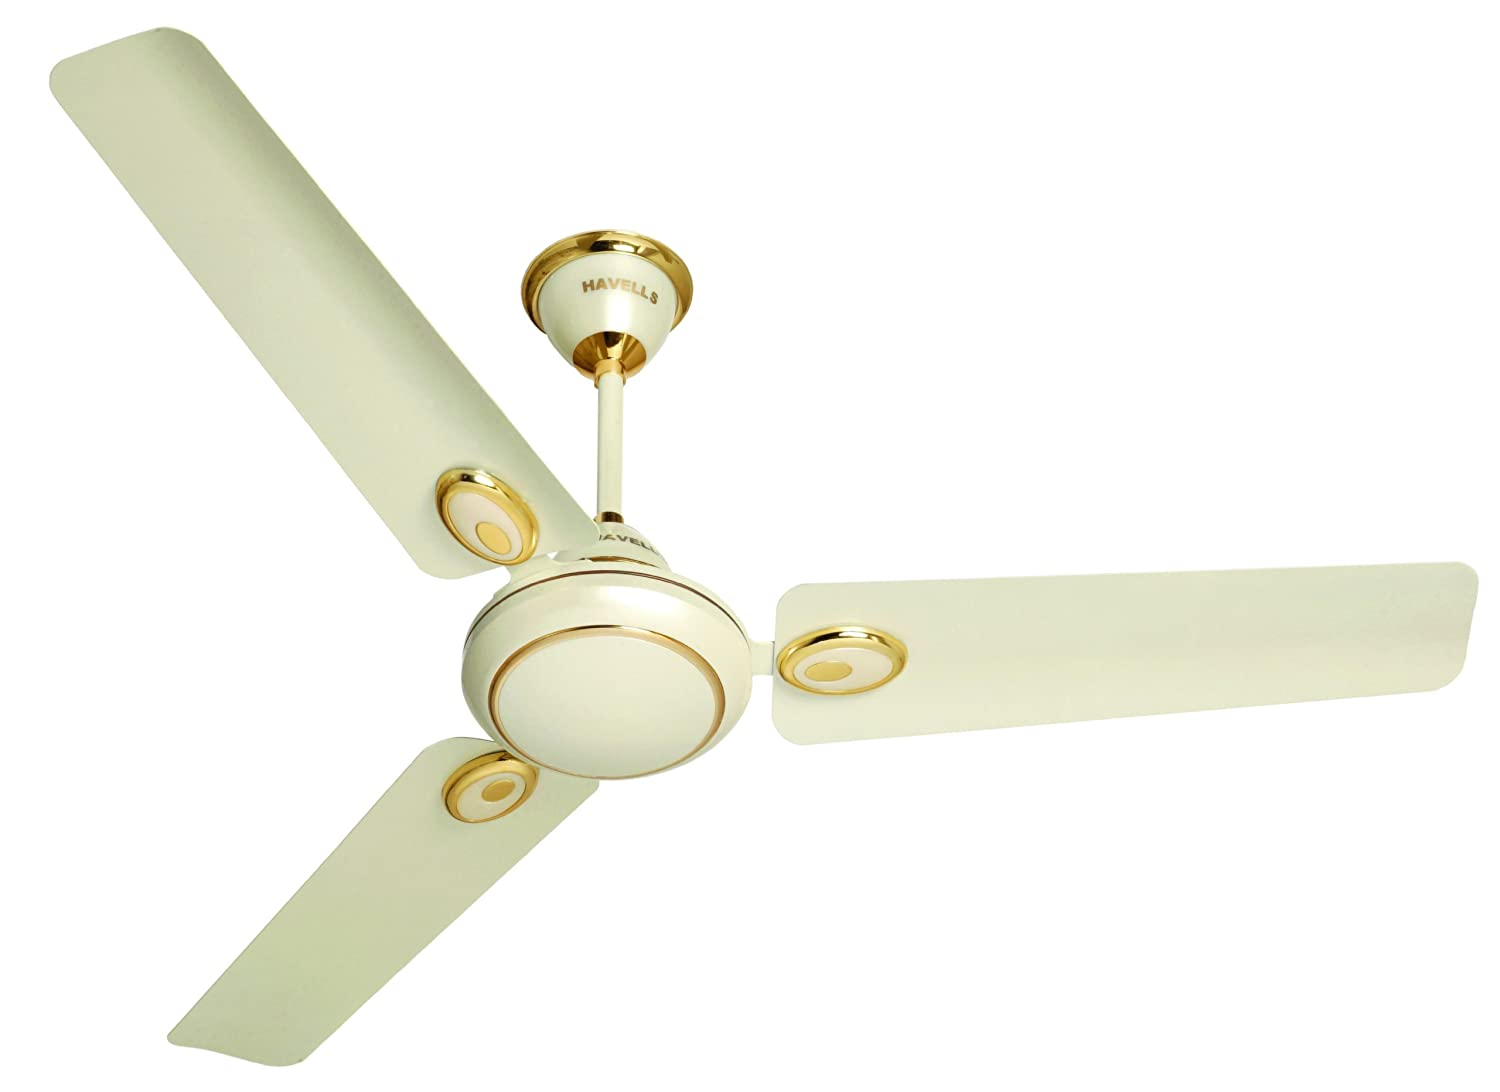 Buy havells fusion five star 1200mm ceiling fan pearl and ivory buy havells fusion five star 1200mm ceiling fan pearl and ivory online at low prices in india amazon aloadofball Image collections